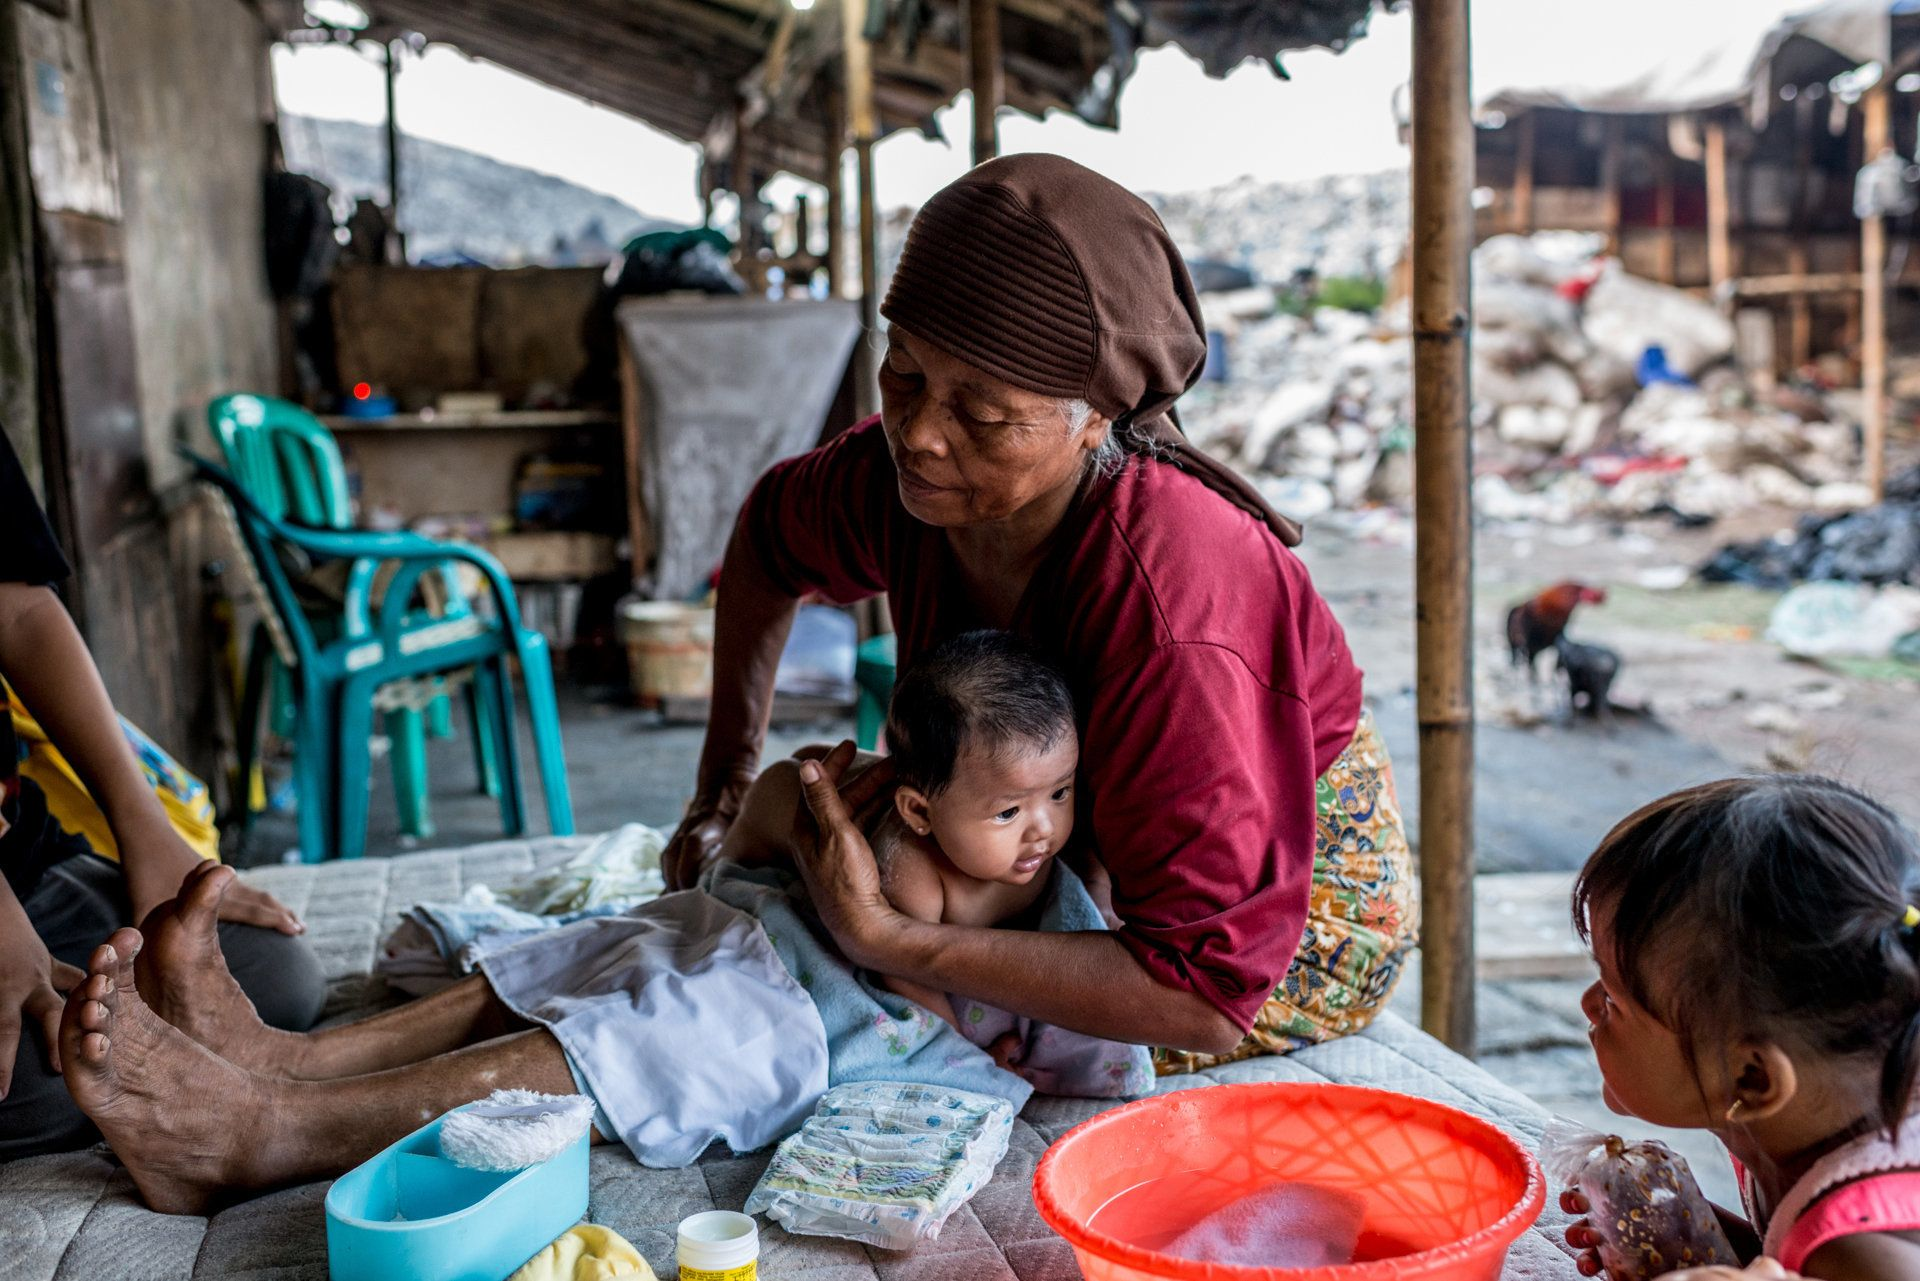 Mak Muji washes Reza's sister, Aysila Husna, 3 months old. Mak Muji did not deliver the newborn because the family had enough